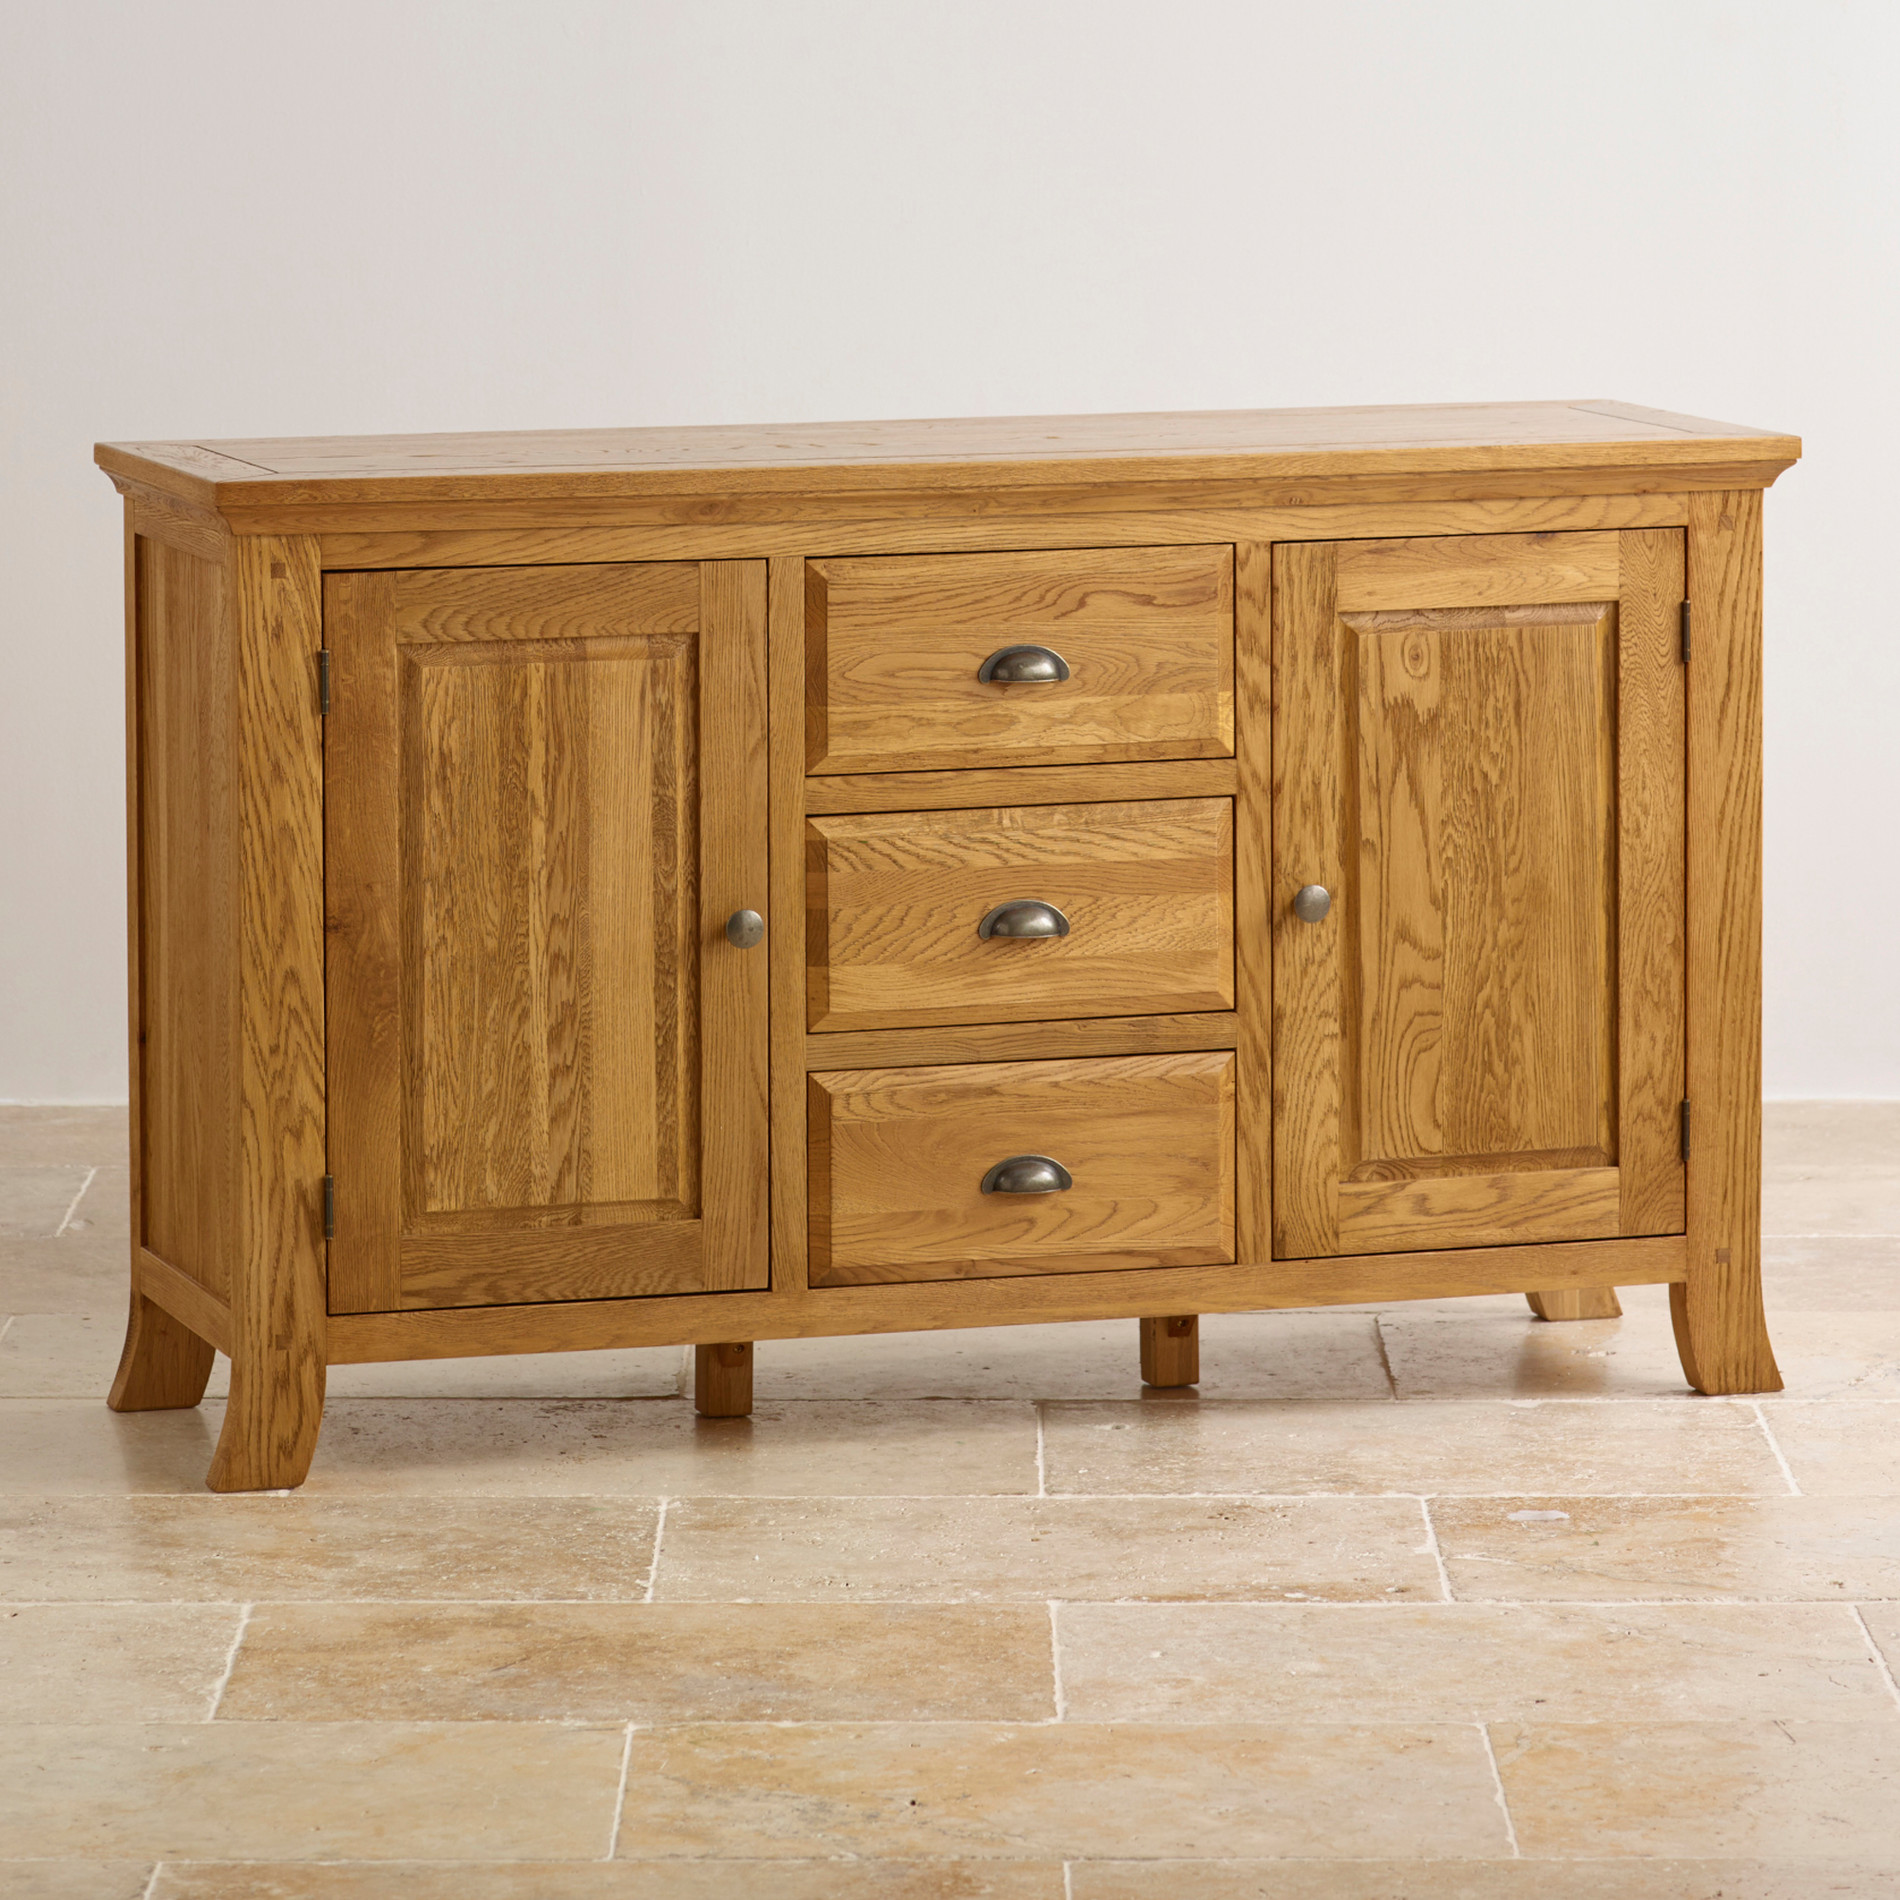 Taunton large sideboard in rustic solid oak oak for Oak furniture land